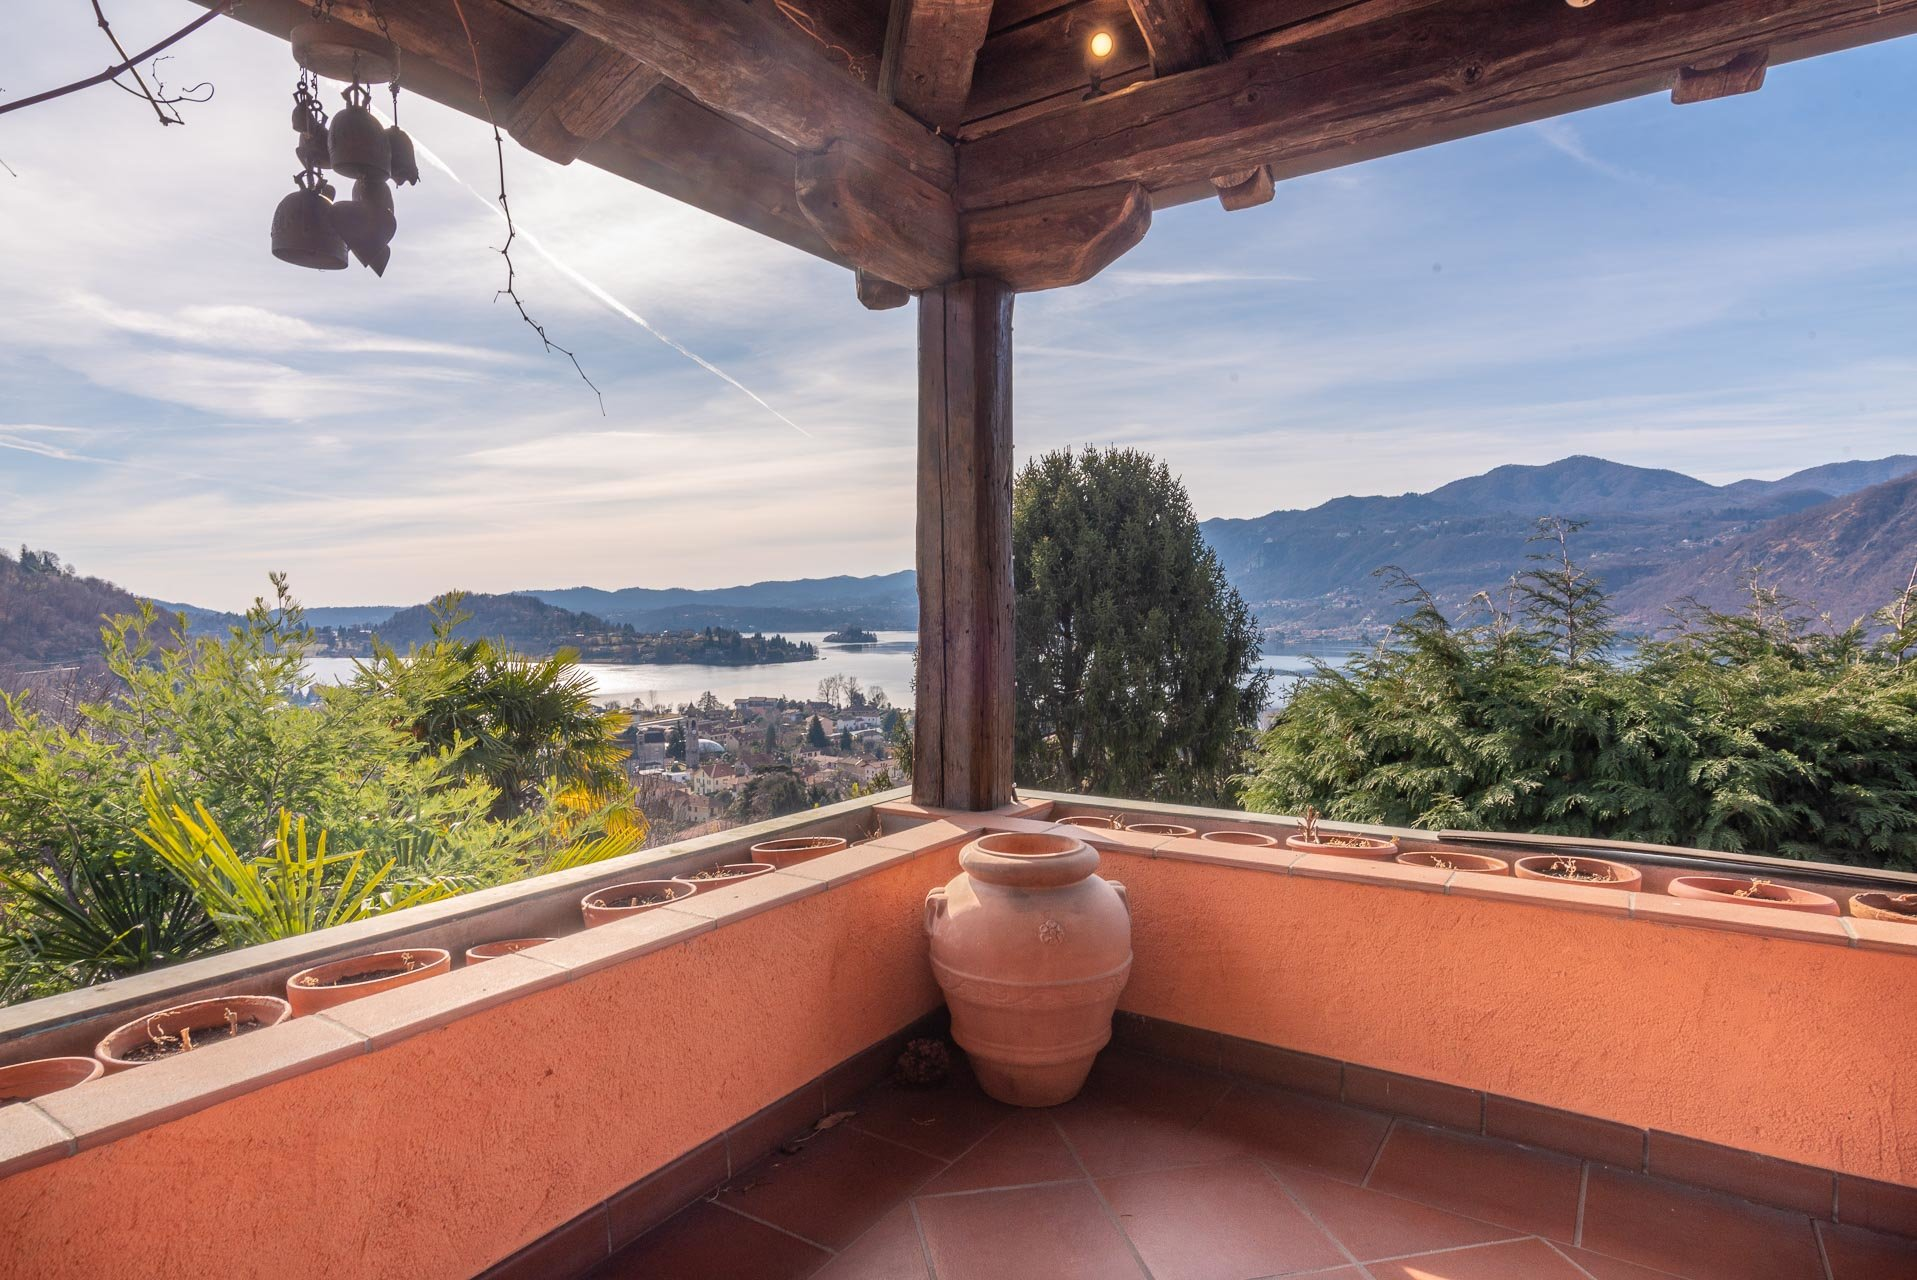 Elegant villa for sale in Pettenasco on Lake Orta - lake view